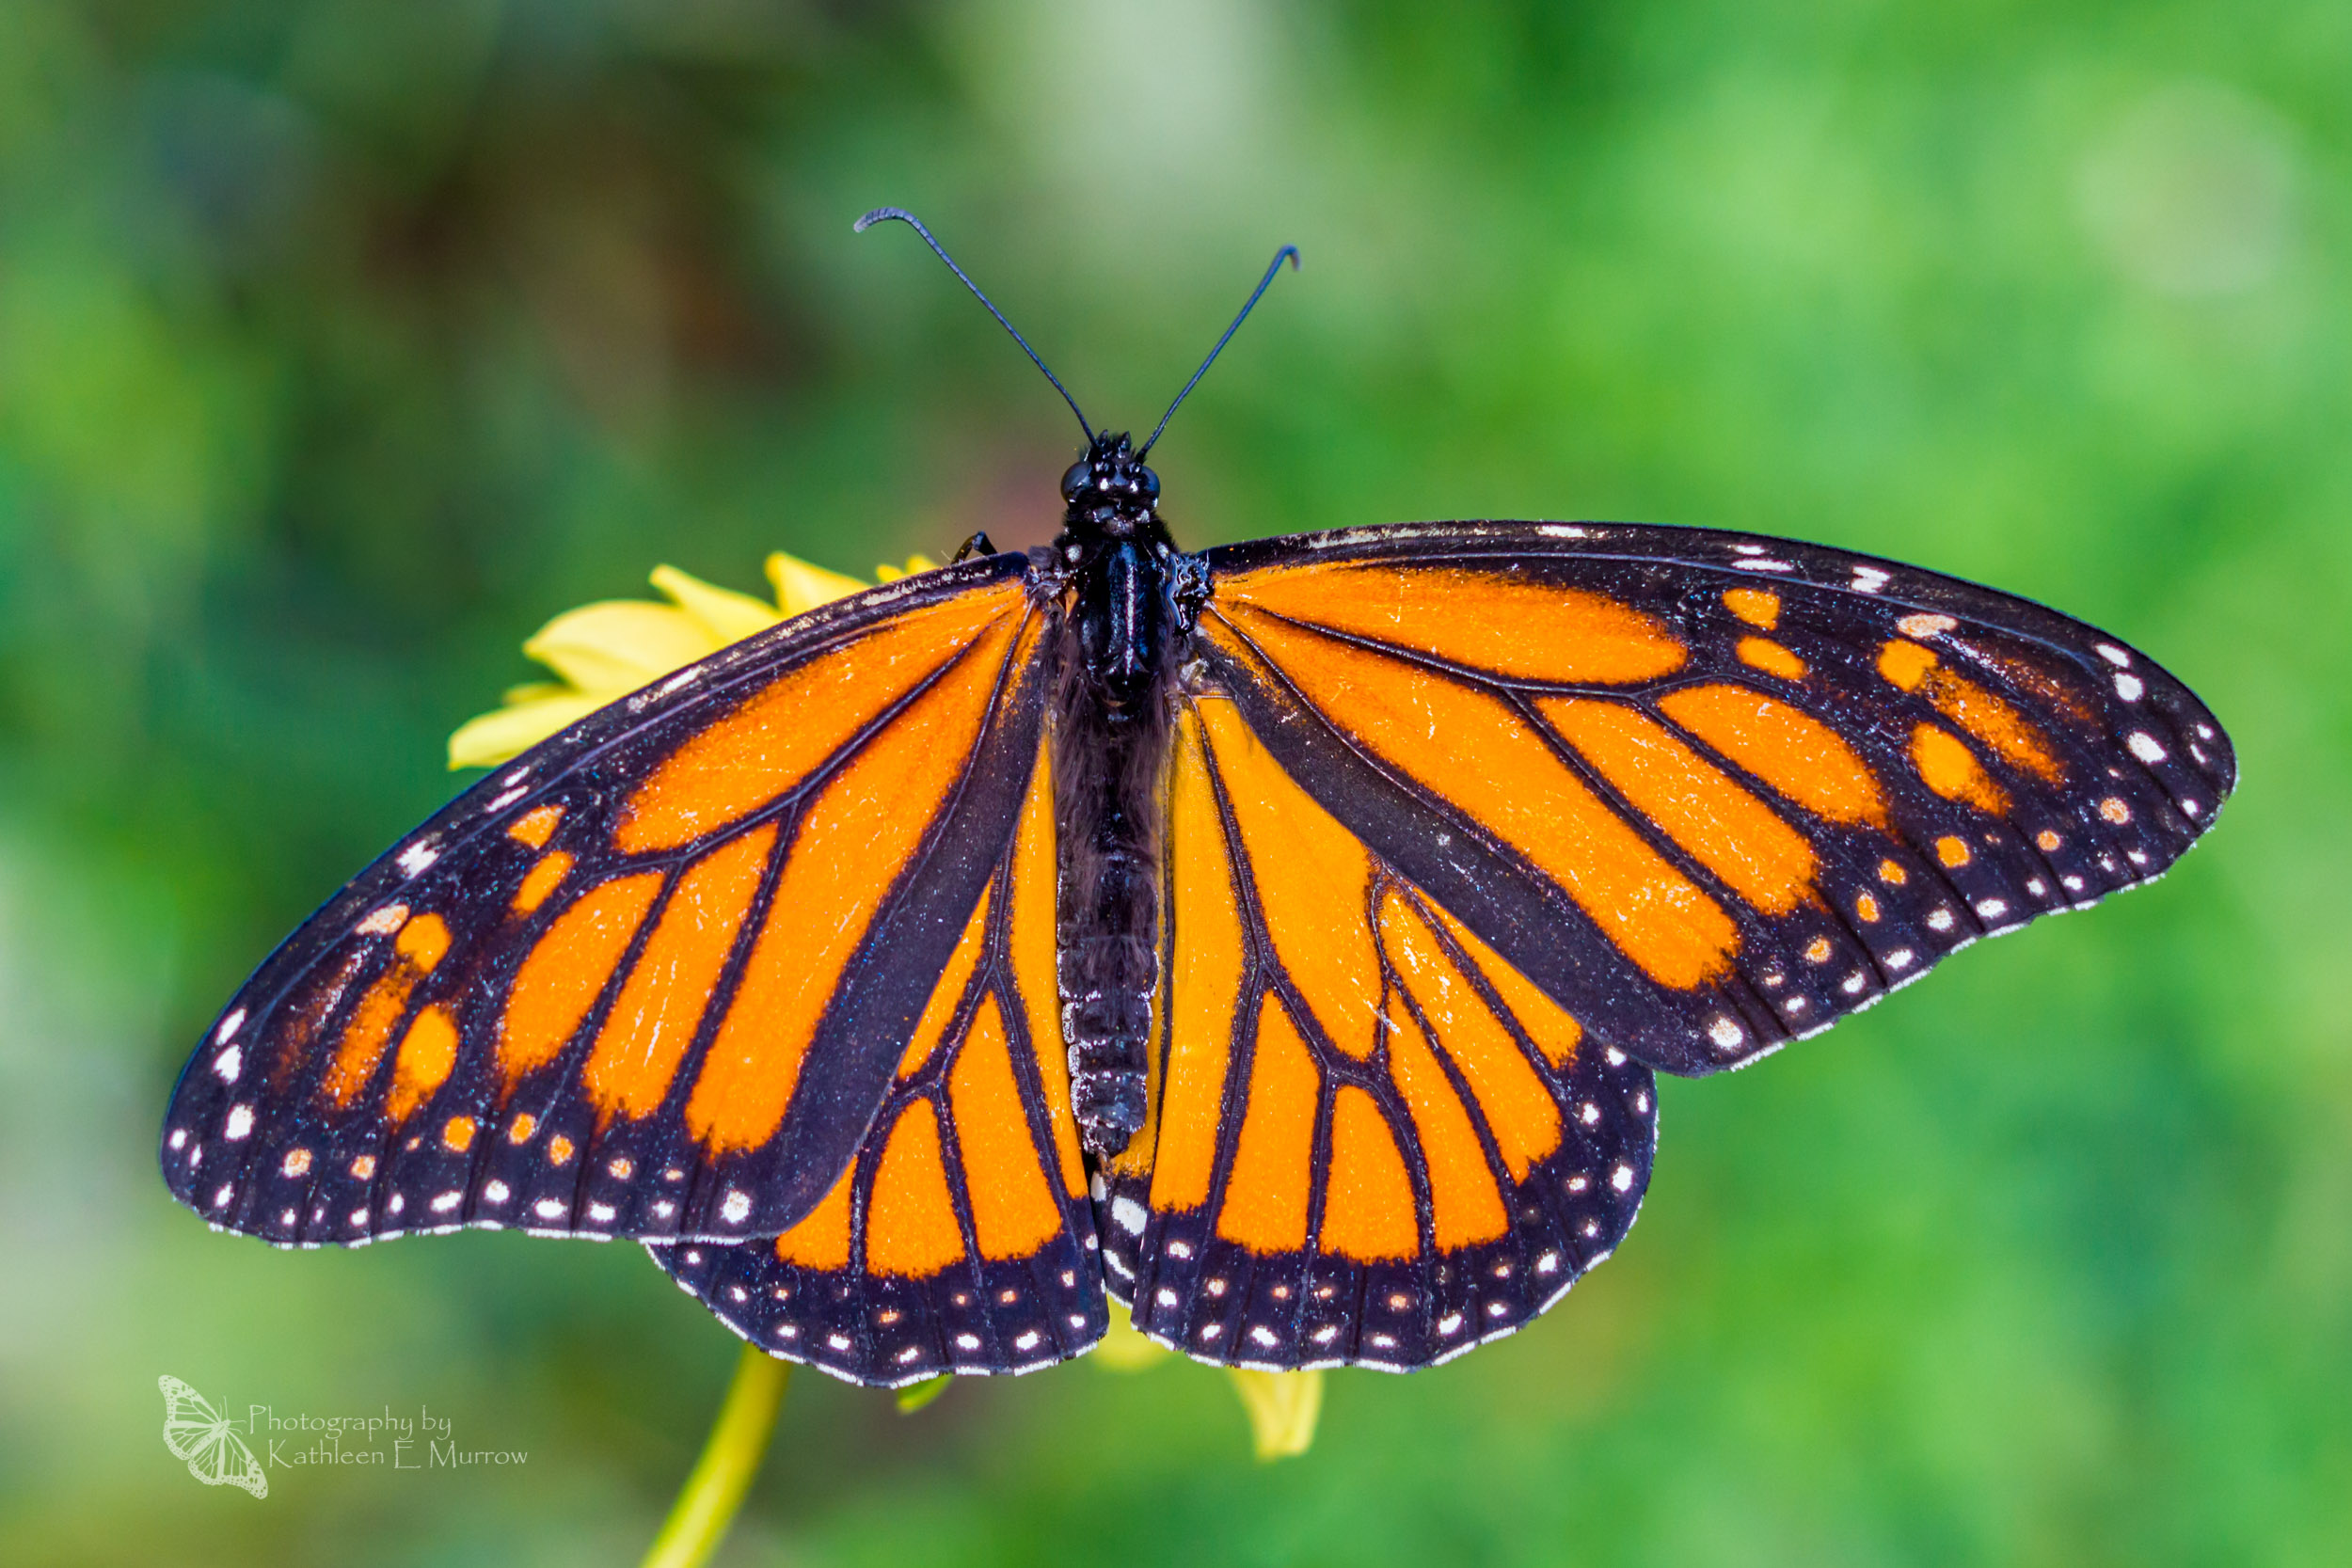 A female monarch butterfly with her wings spread on a dahlia